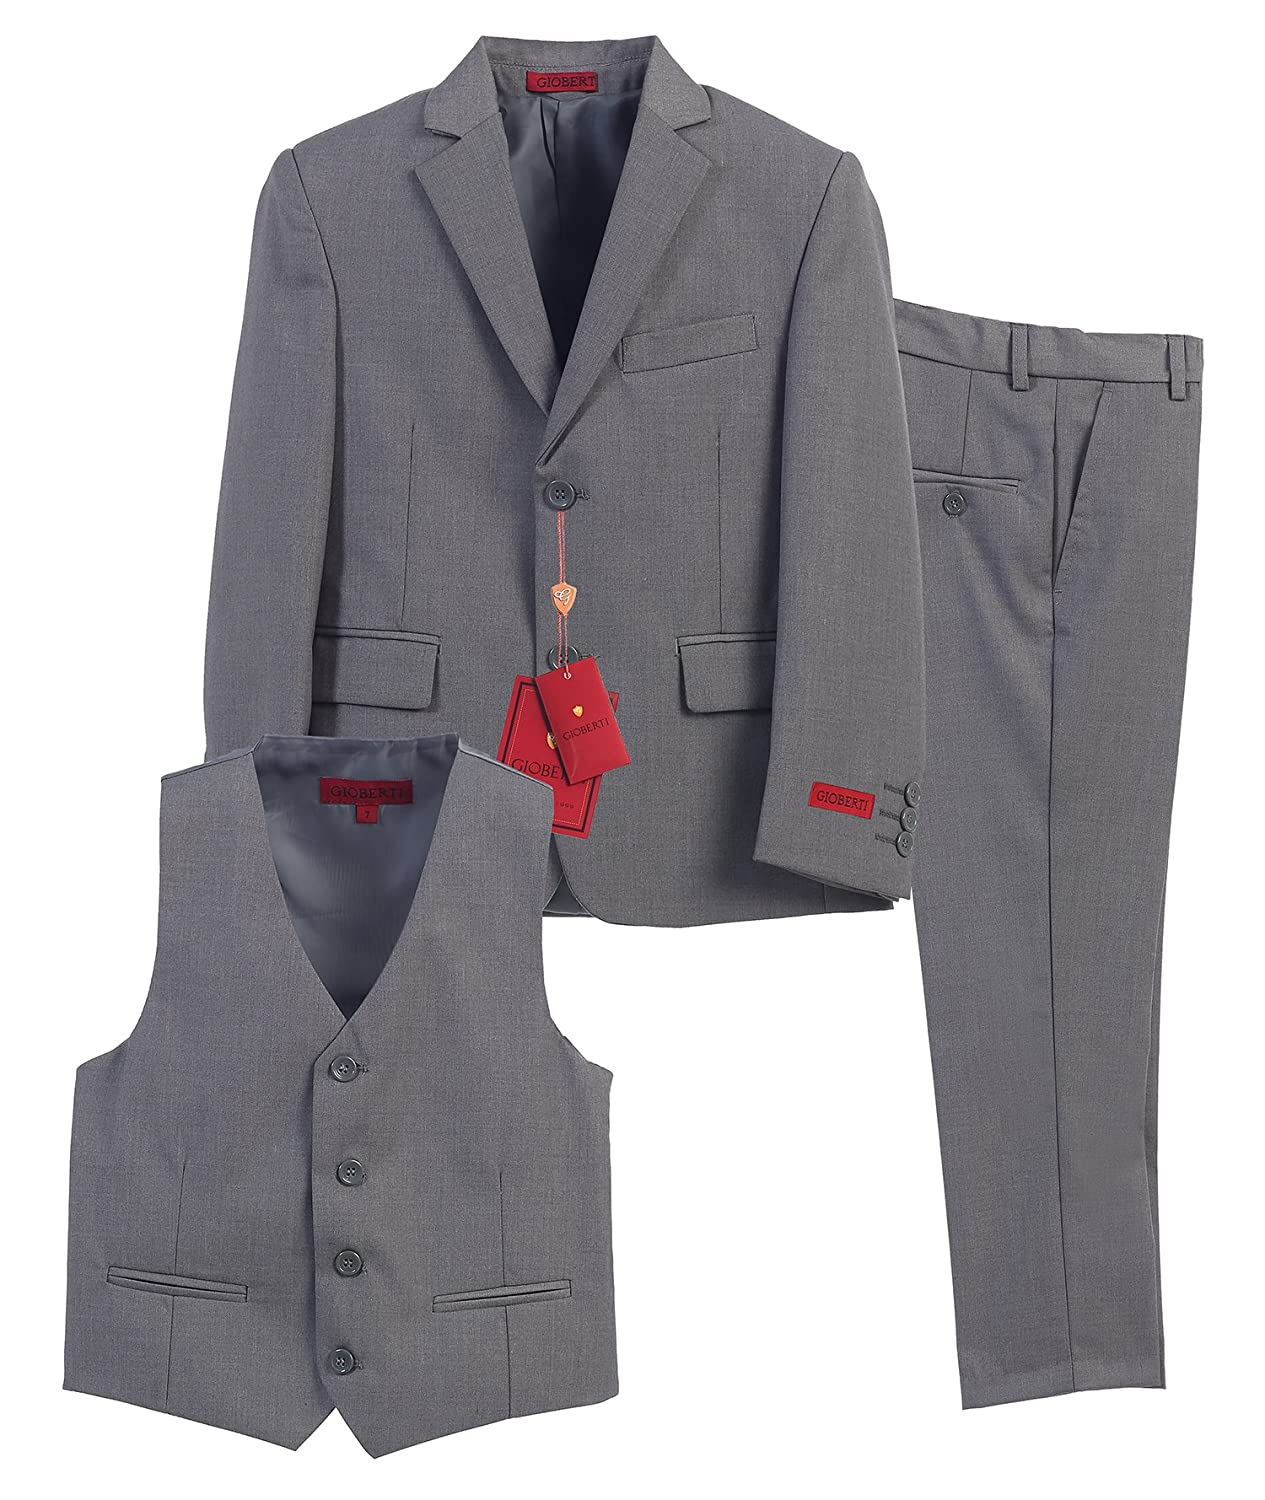 Gioberti 3 Piece Big Boys Formal Suit, Vest, Pants Set BSV-81